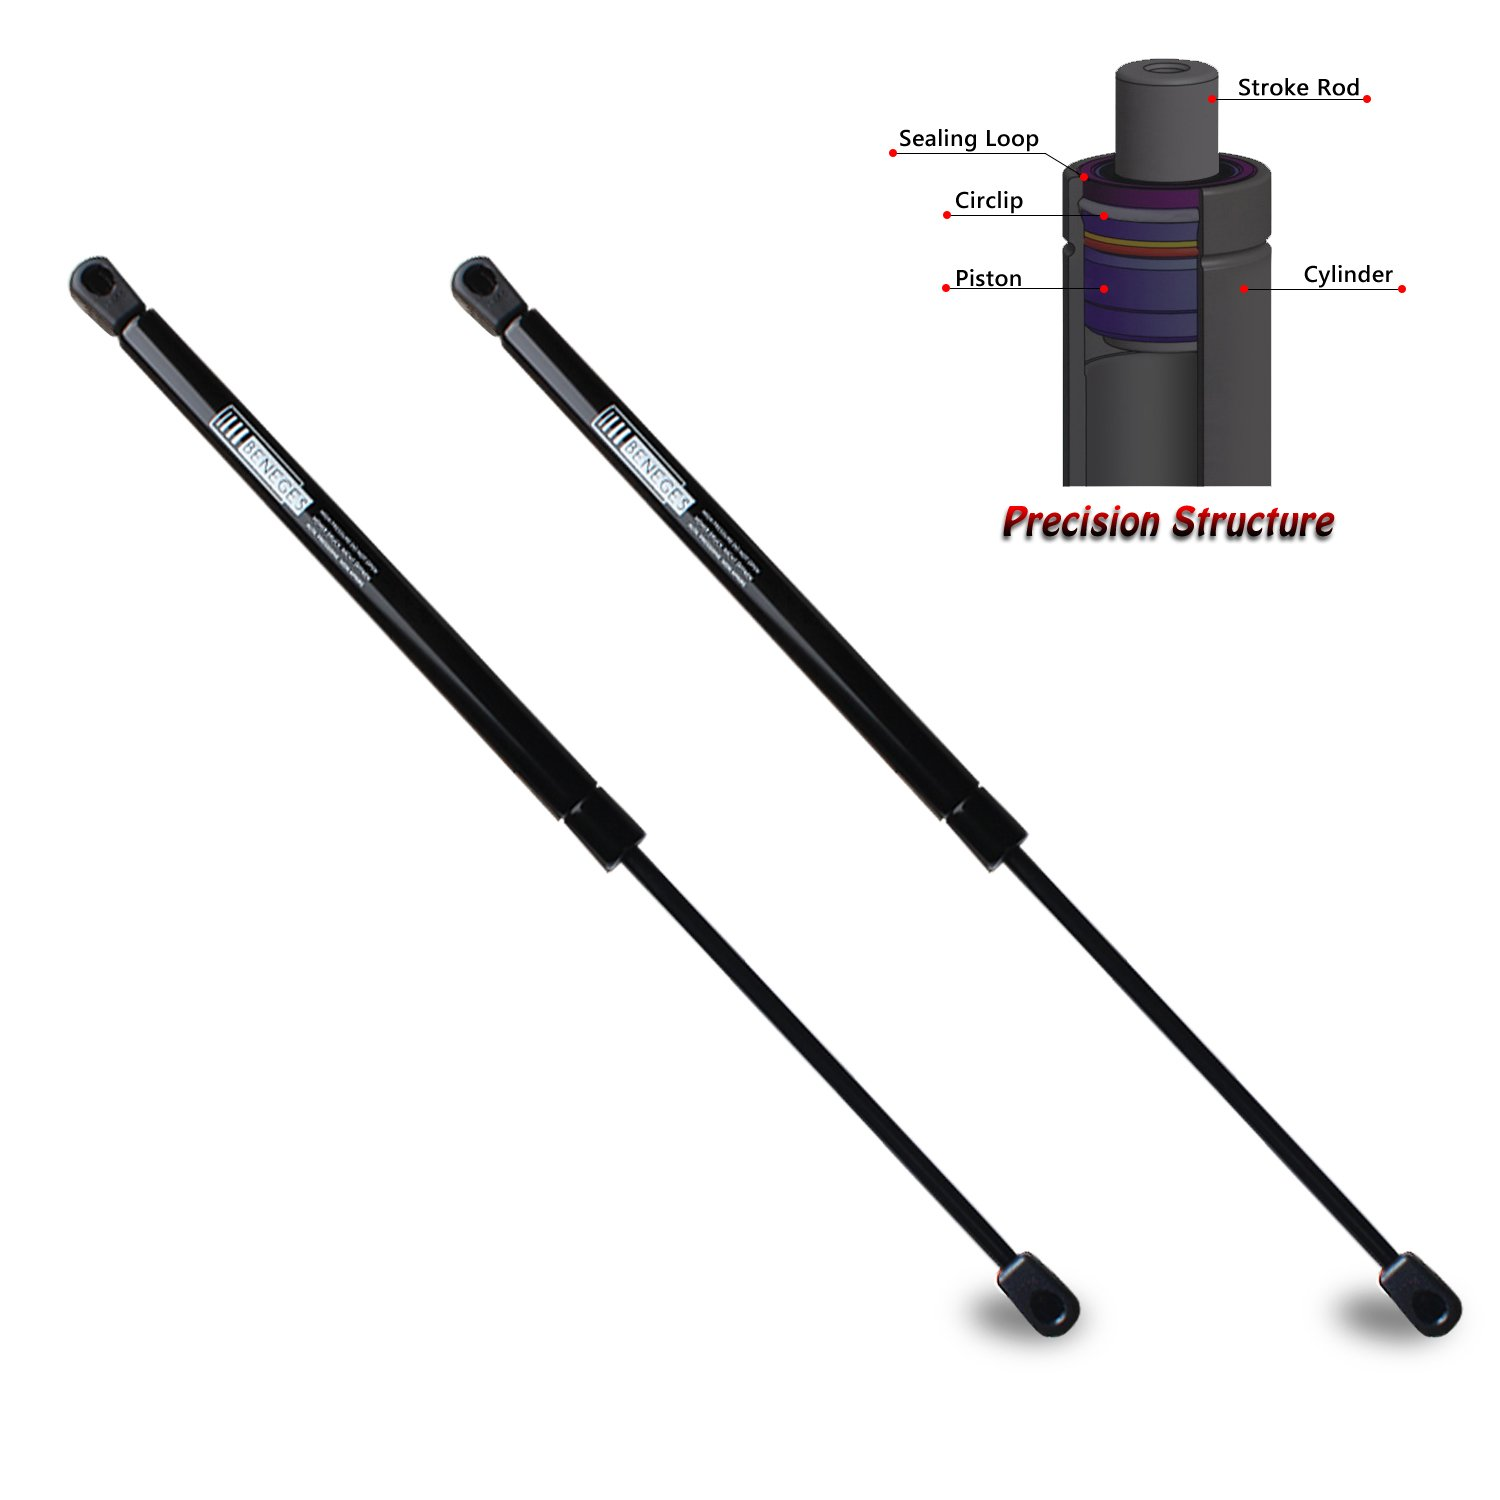 SG467015 PM3062 Beneges 2PCs Trunk Lift Supports Compatible with 2008-2012 Hyundai Sonata Rear Trunk Struts Shocks Dampers Gas Charged Springs 817710A000